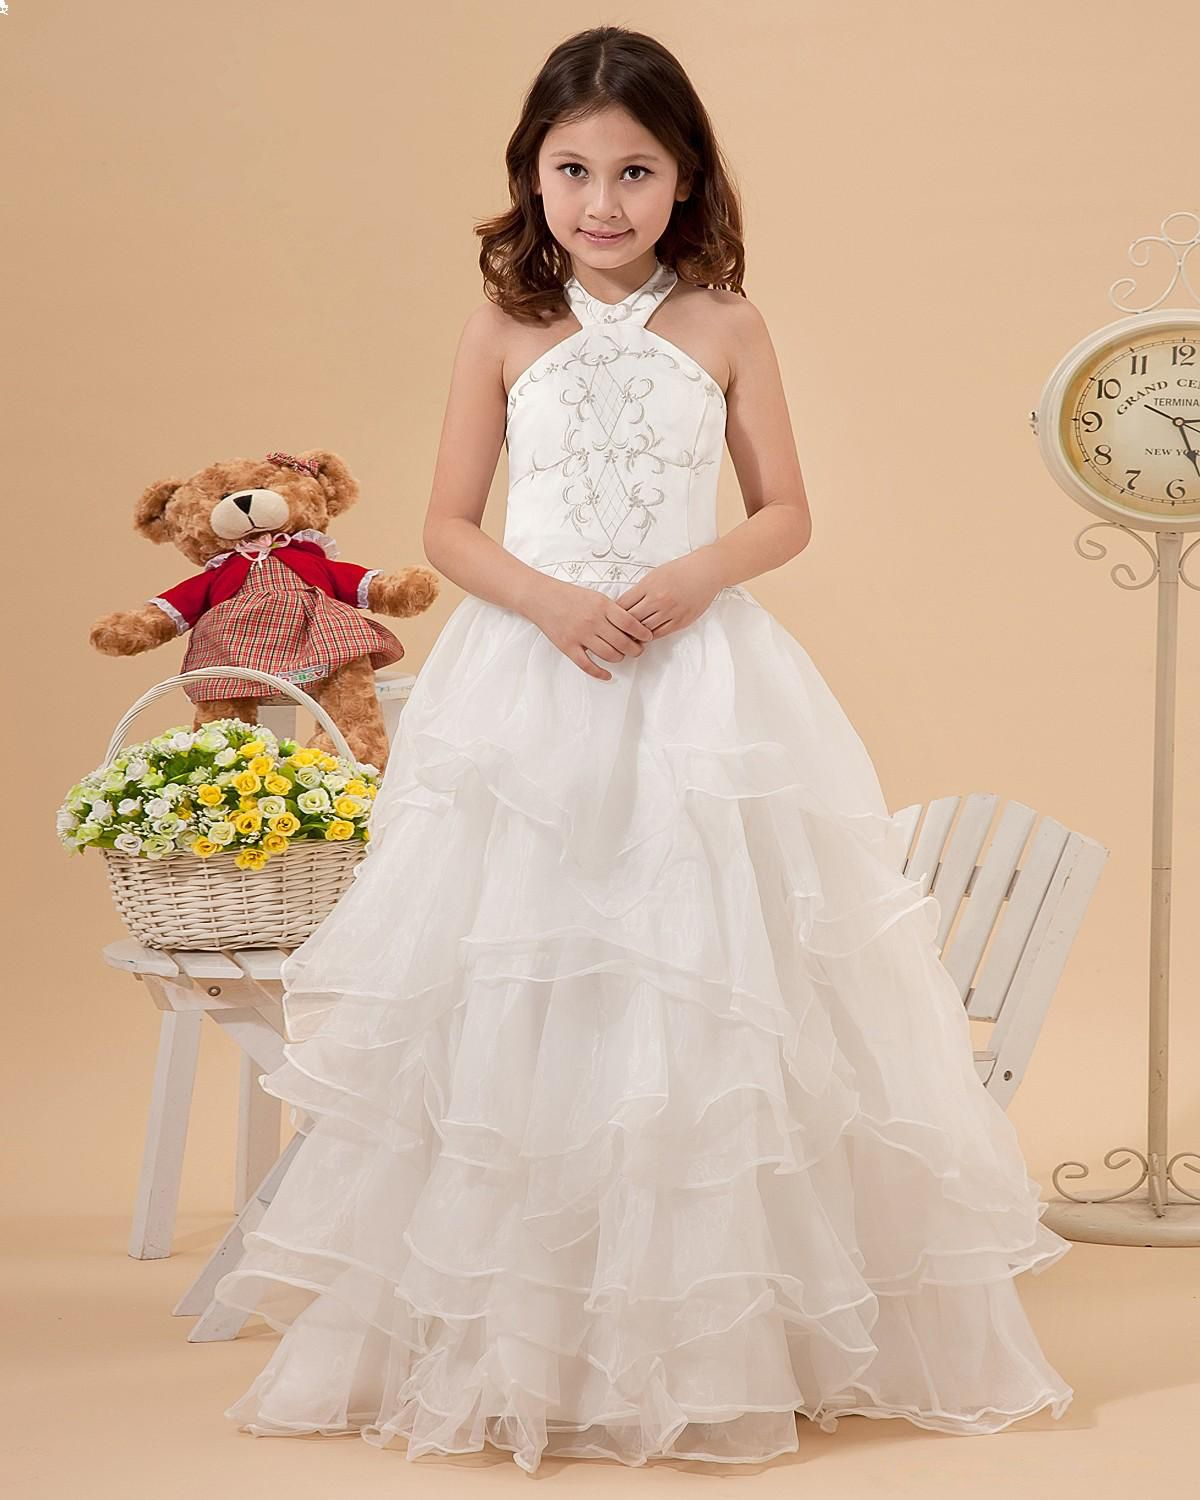 Hairstyle For Halter Neck Wedding Dress: Beautiful Halter Neck Embroideried Satin With Organza